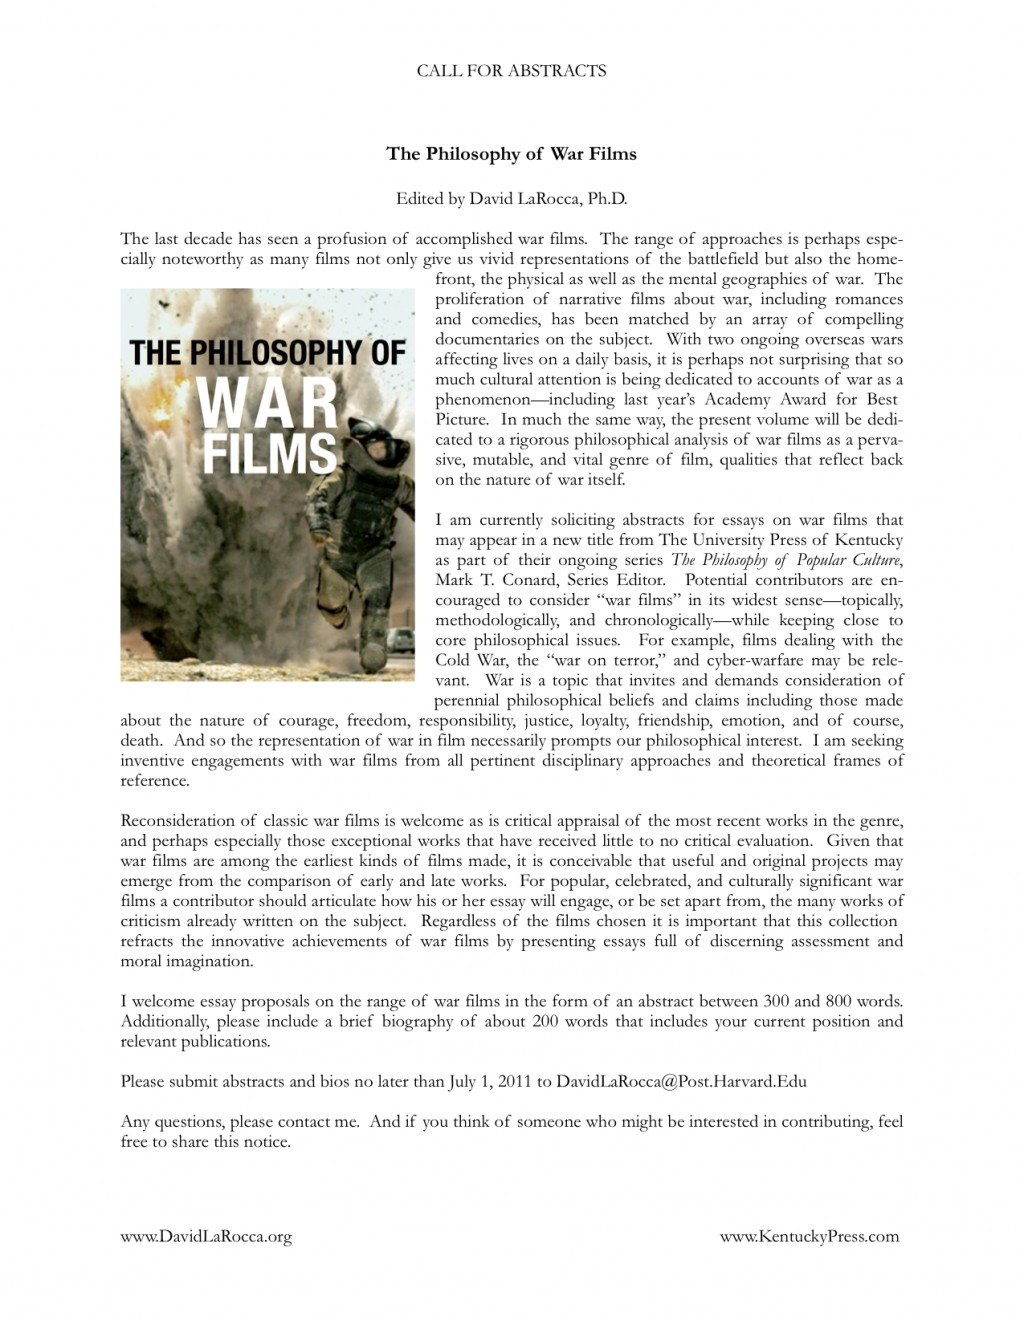 008 Philosophy Of War Films Cfp Larocca Essay Collection Shocking Best Pdf Collections 2019 Large